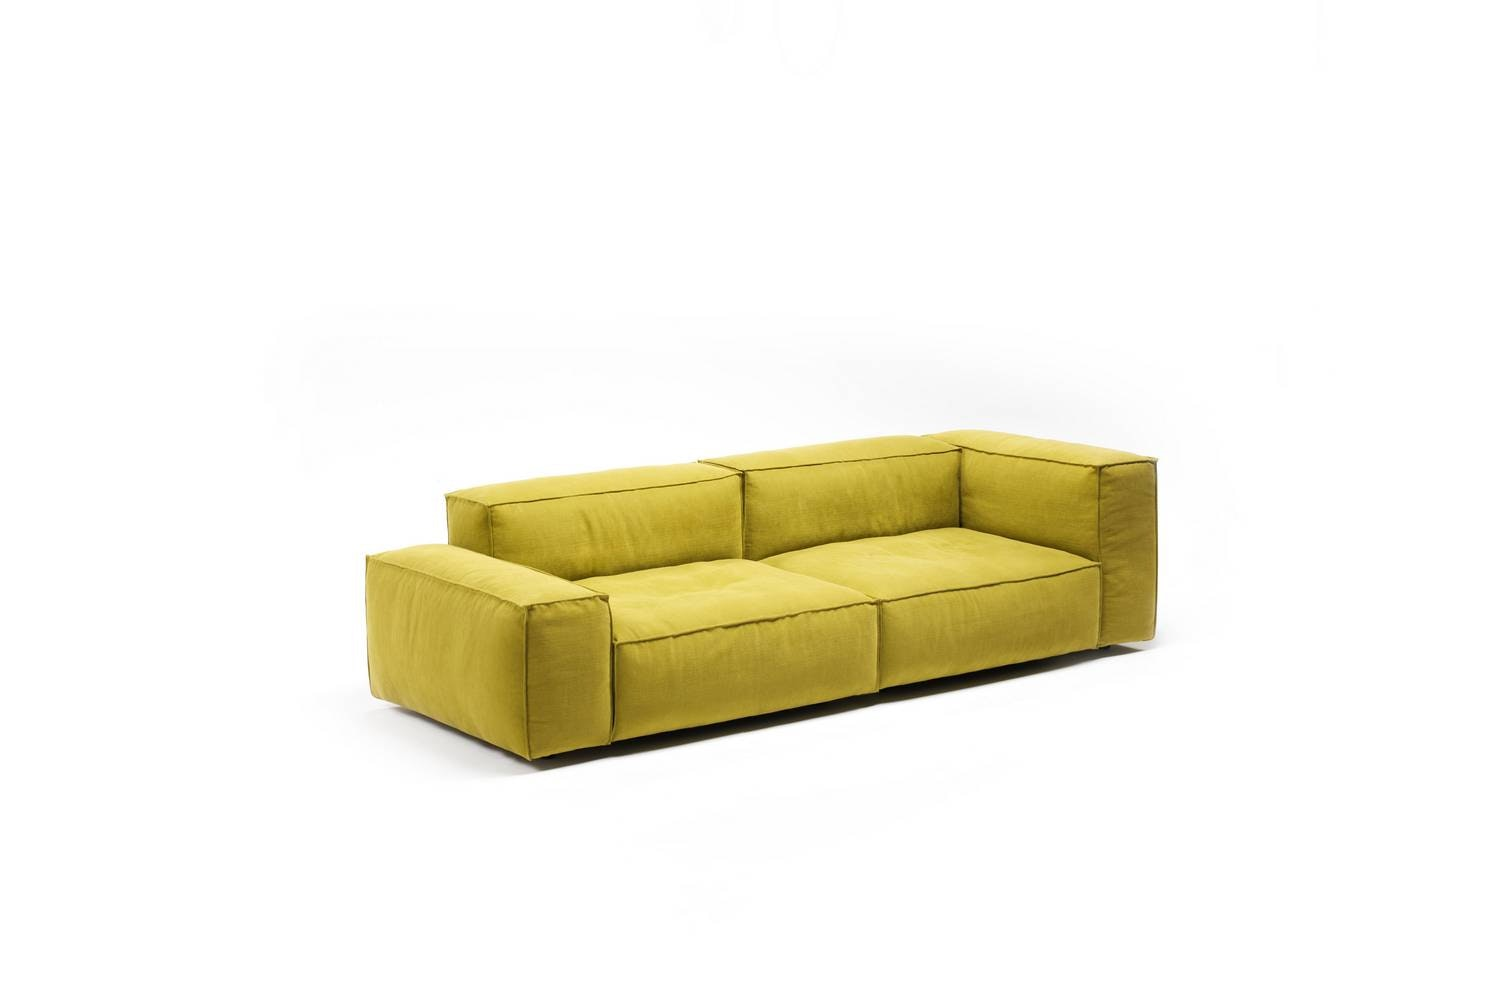 Neowall Sofa by Piero Lissoni for Living Divani